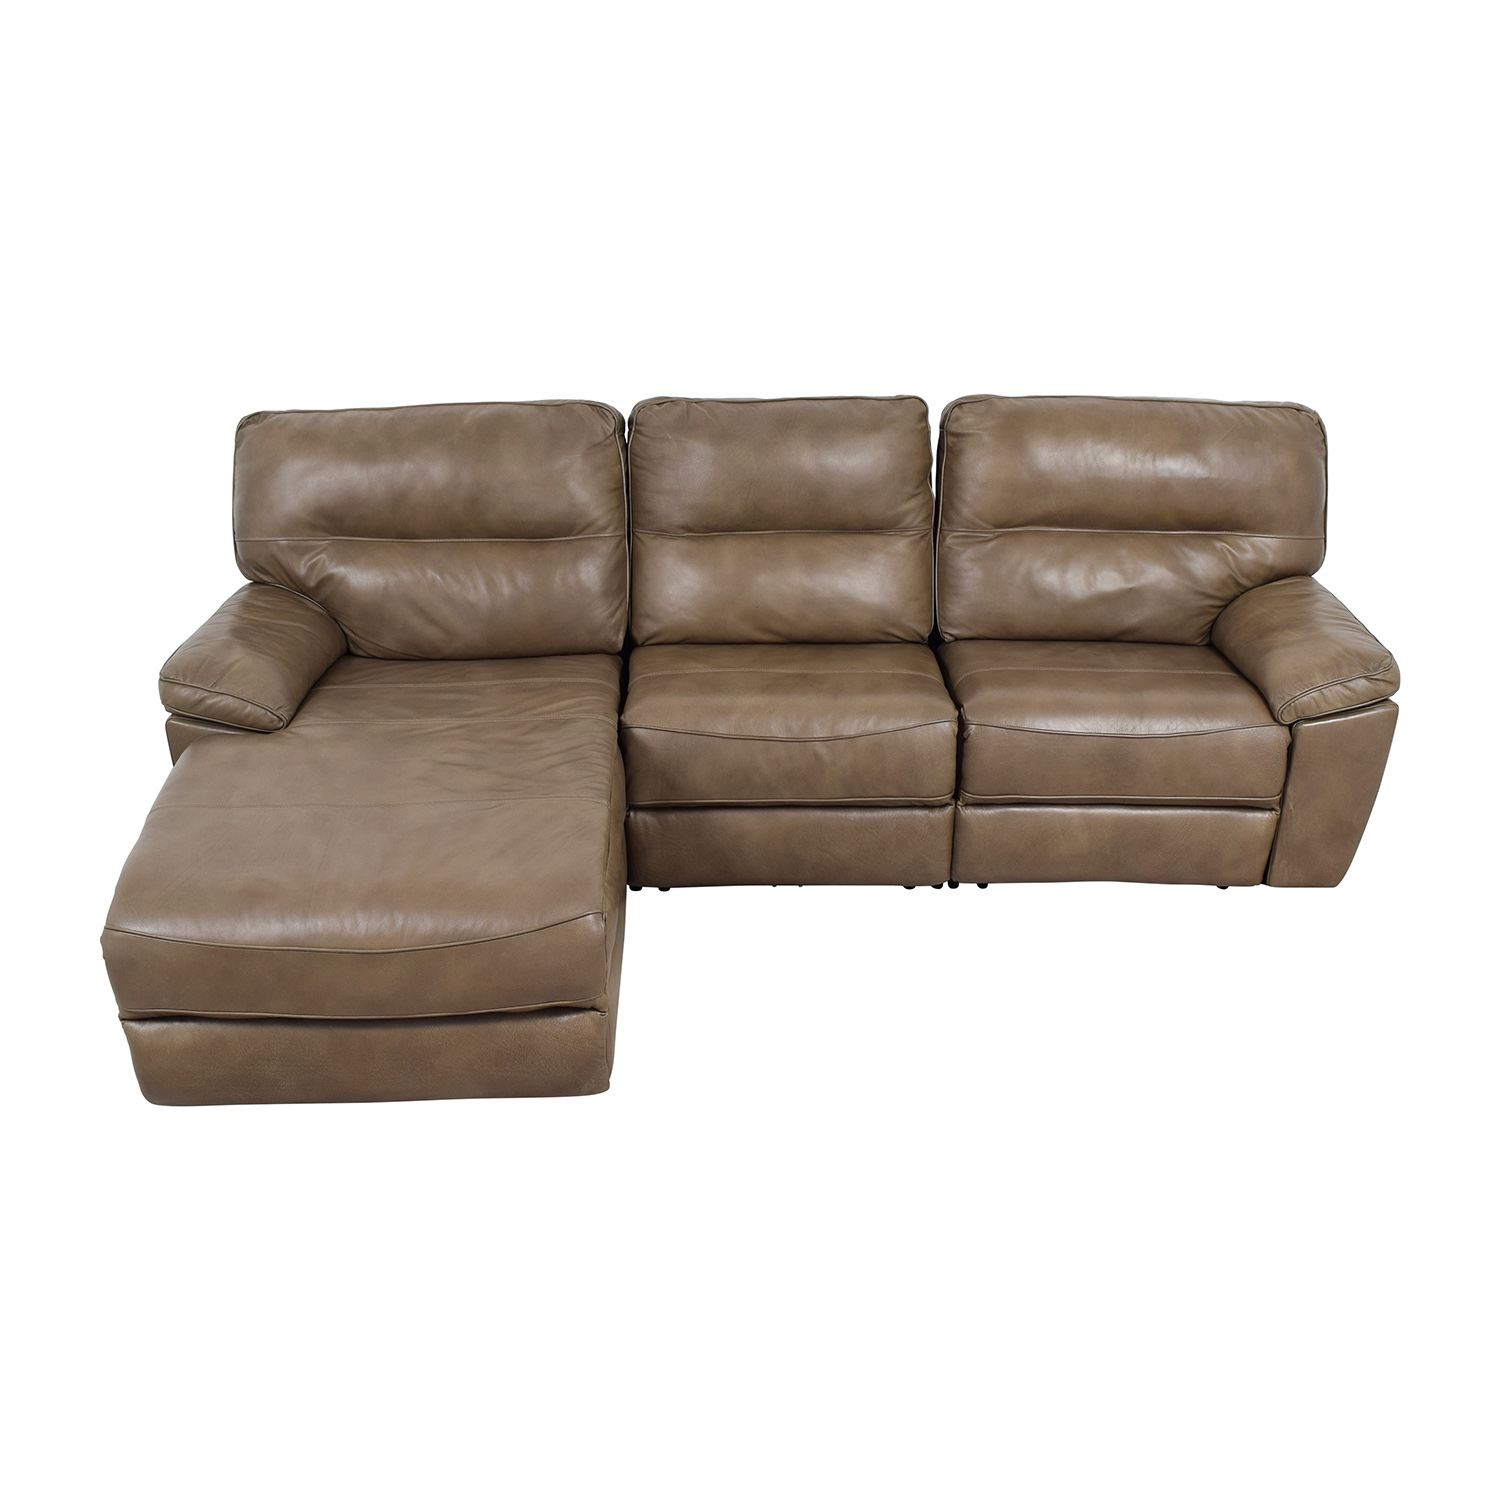 76% OFF - Macy\'s Macy\'s Gunmetal Grey Leather Chaise Lounge Recliner / Sofas